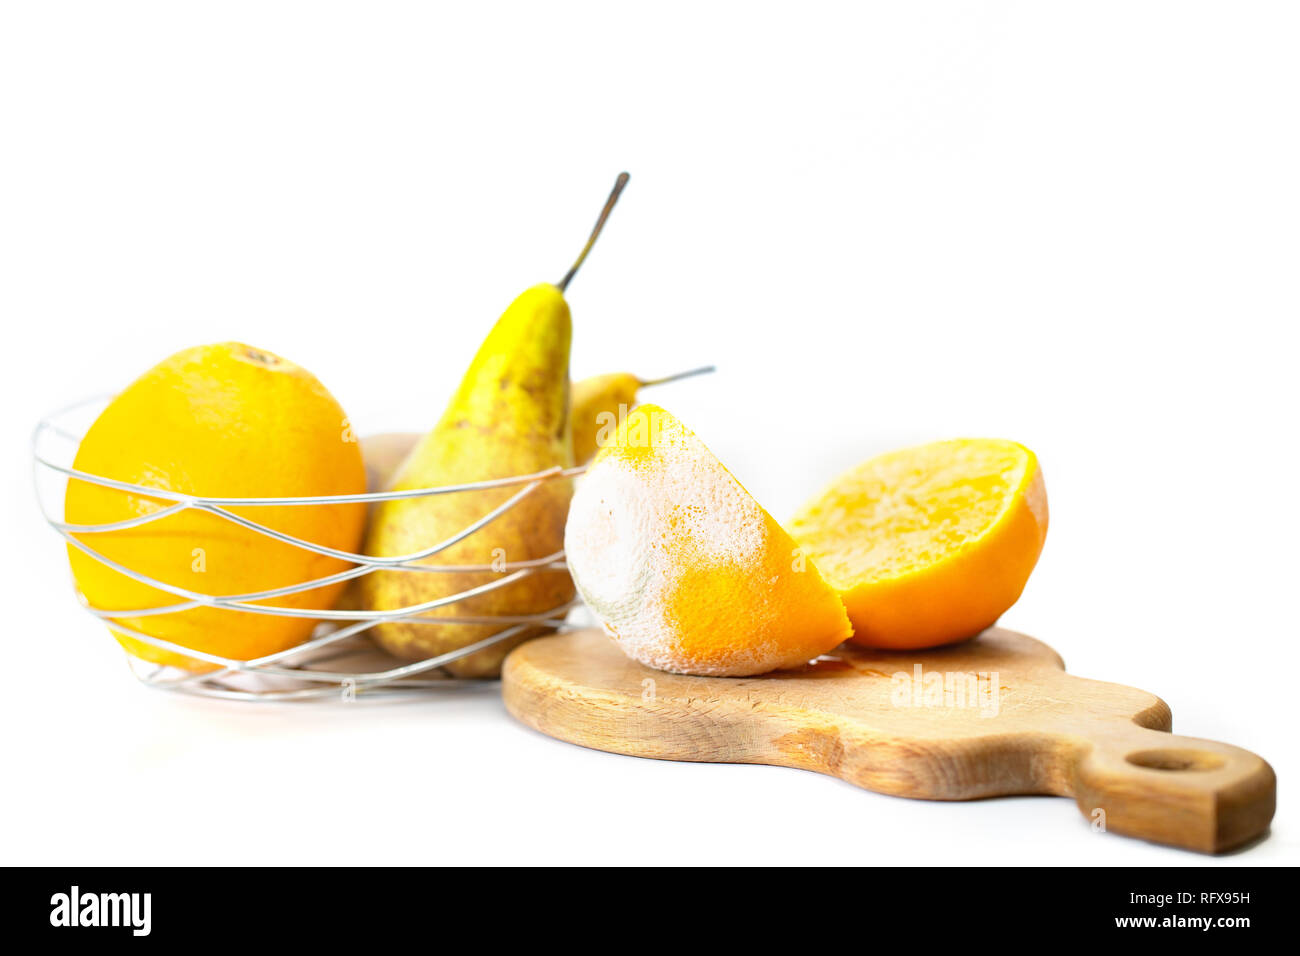 Cut in half a spoiled orange with white and green mold, against the background of other fruits - Stock Image